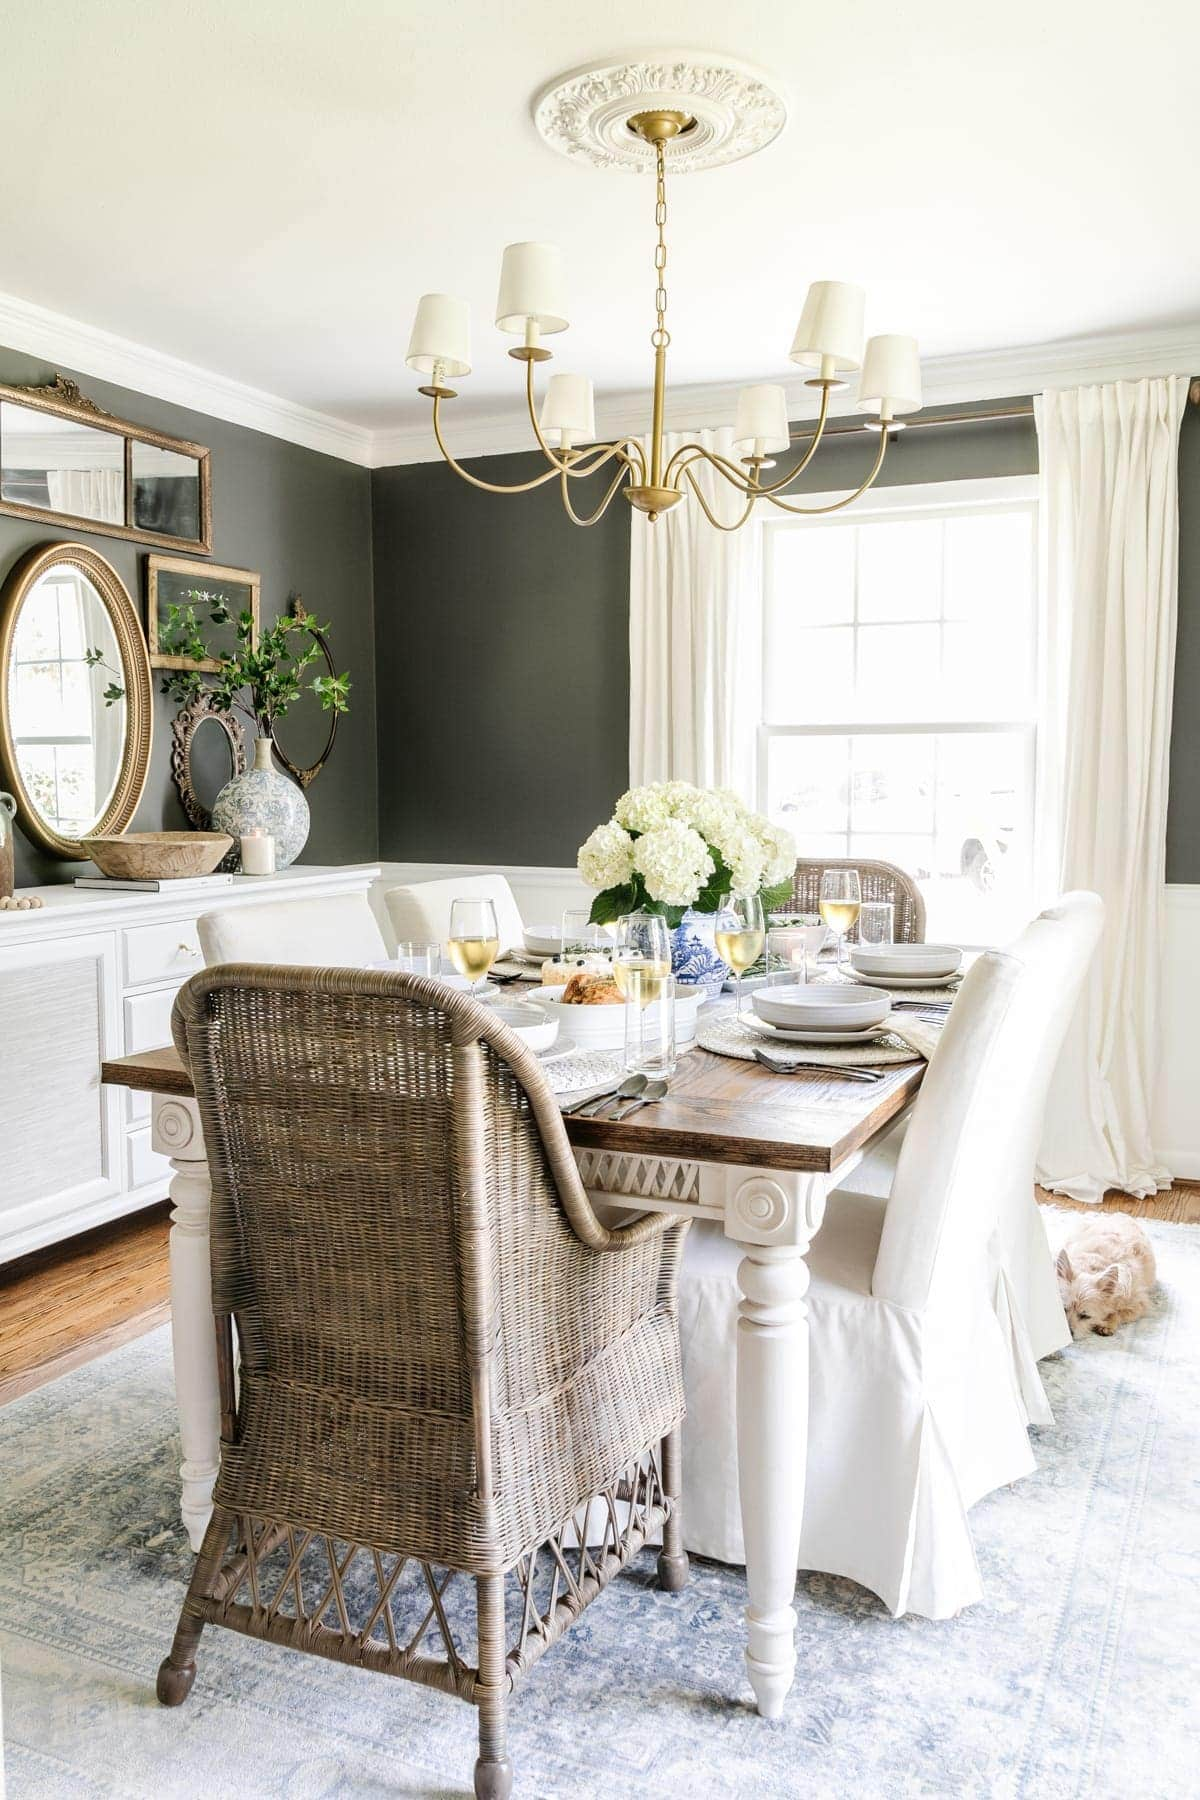 Our Modern Classic Dining Room Makeover Plans